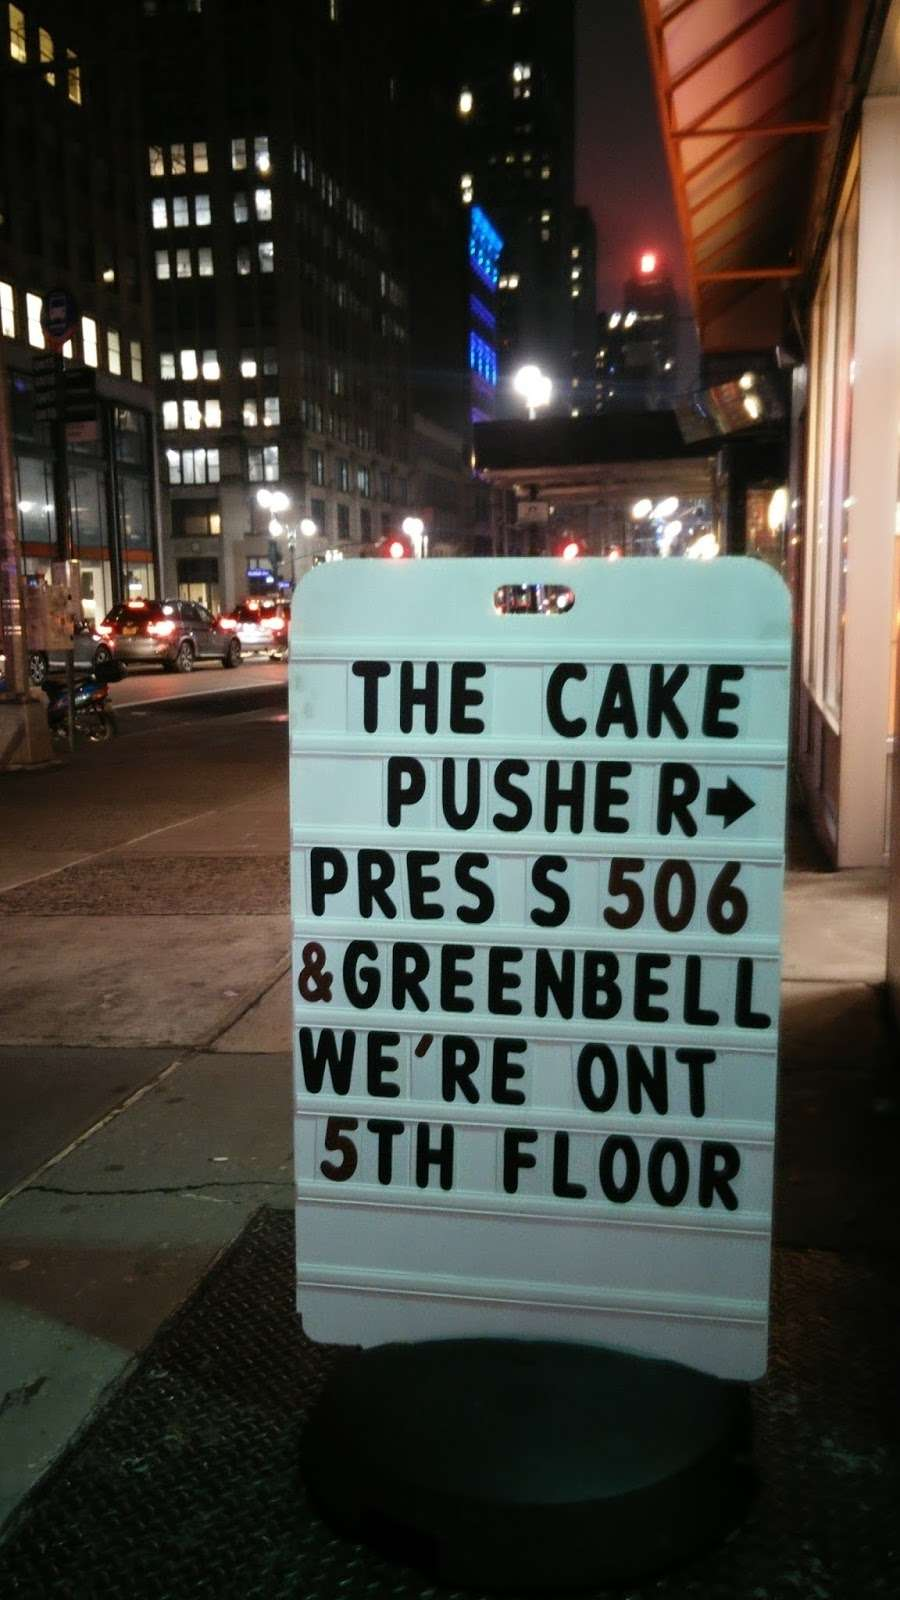 The Cake Pusher - bakery  | Photo 5 of 10 | Address: 53 E 34th St #506, New York, NY 10016, USA | Phone: (347) 627-0222